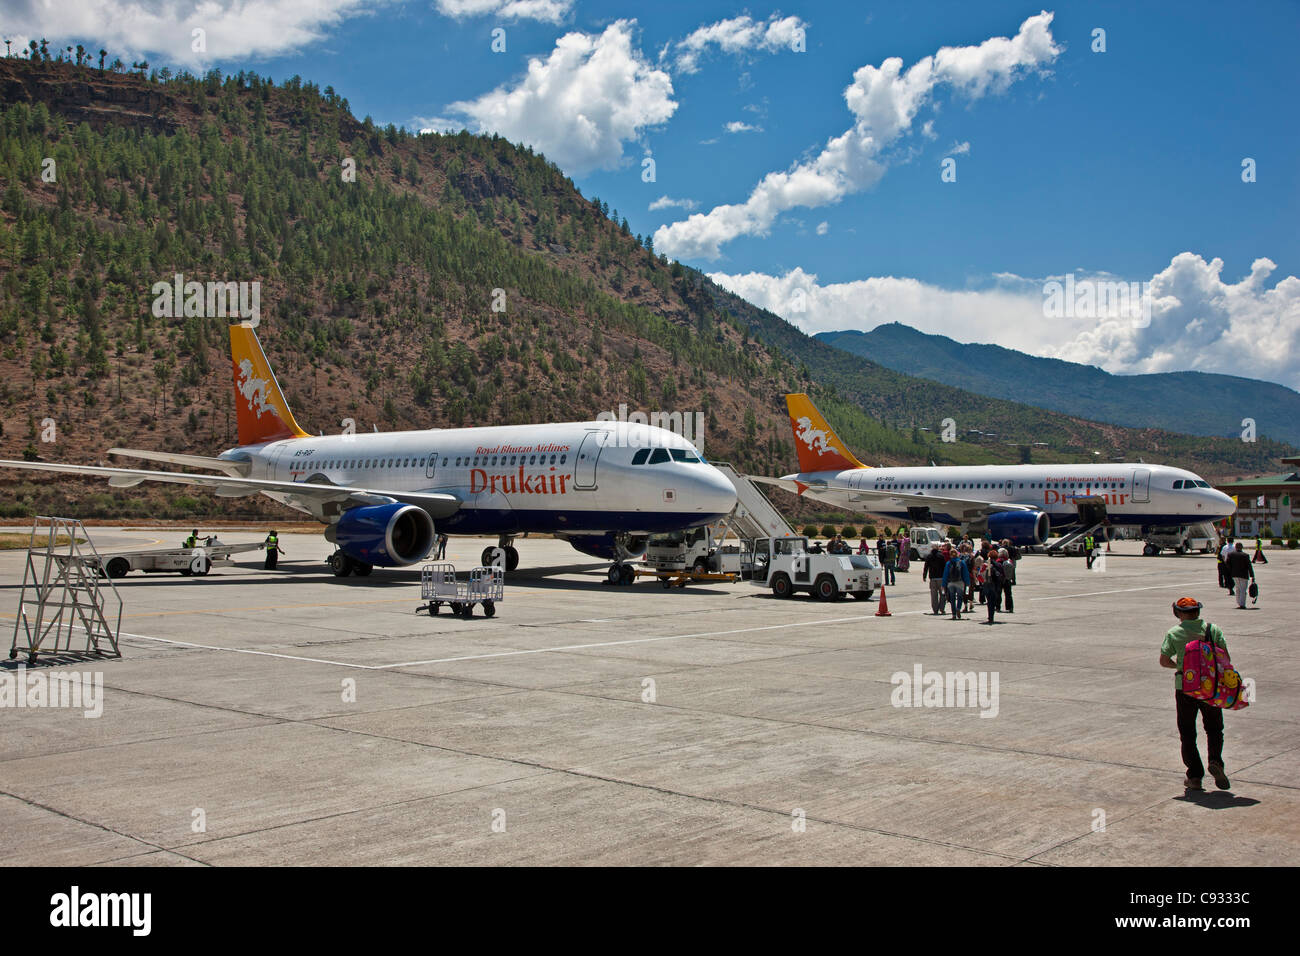 Bhutans only airport is situated at high altitude on the outskirts of Paro. - Stock Image